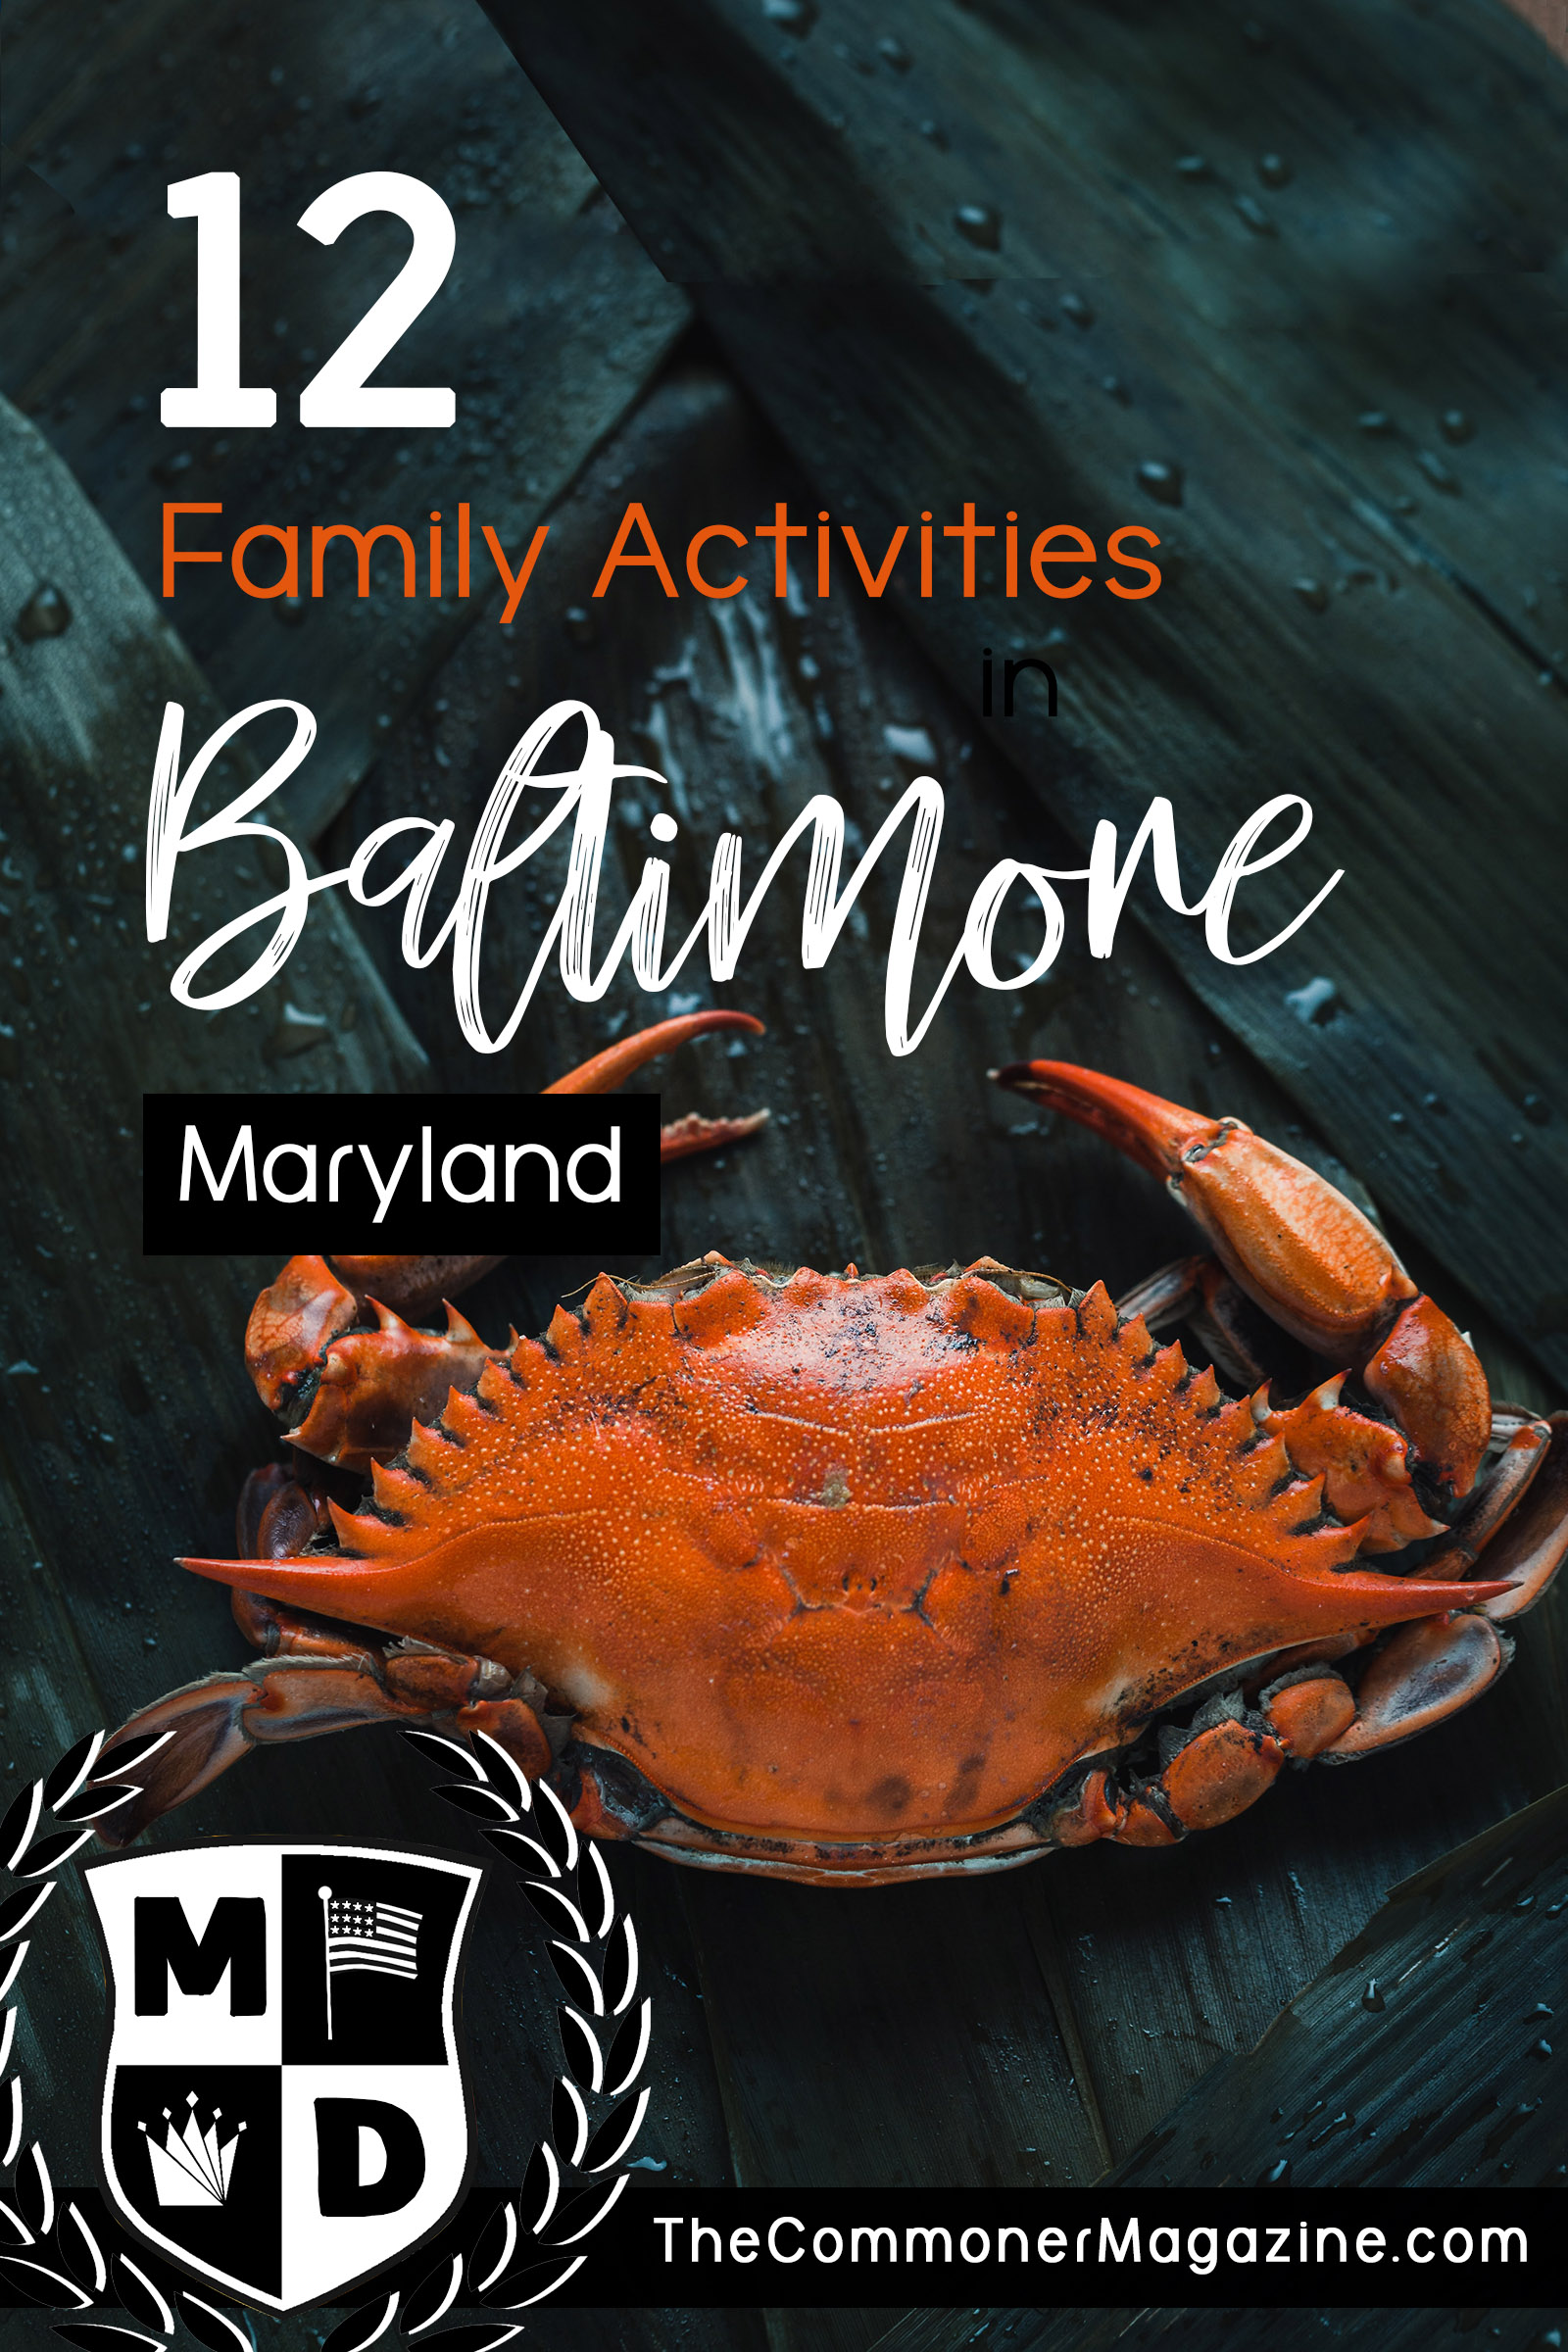 Looking for things to do in Baltimore? This is Part 2 of a series covering 12 fantastic, kid friendly activities for your next vacation to Charm City. From museums, the inner harbor and the National Aquarium, there's something to do in every season. The Commoner Magazine, full of USA travel tips from local experts. #BlueCrab #Baltimore #Maryland #ThingstodoinBaltimore #Washingtondaytrips #DCdaytrips #USAtravel #Familytravel #travelwithkids #kidsactivities #USAeastcoast #eastcoasttravel